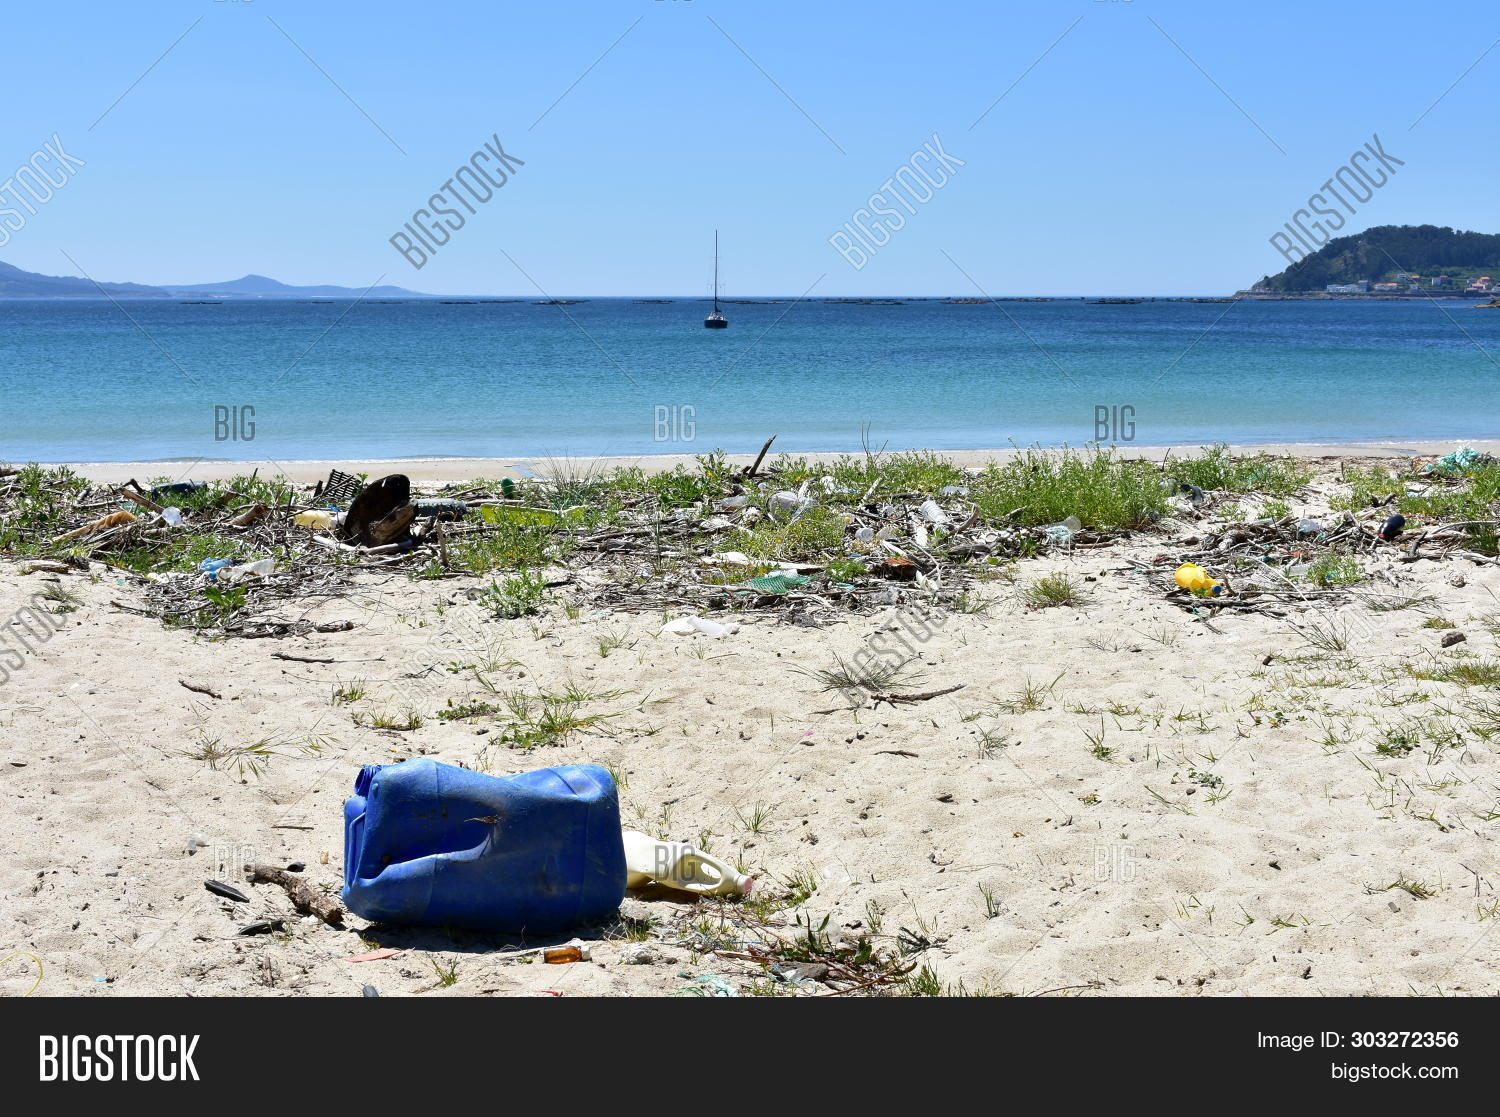 Dirty beach with plastic pollution. Galicia, Spain.